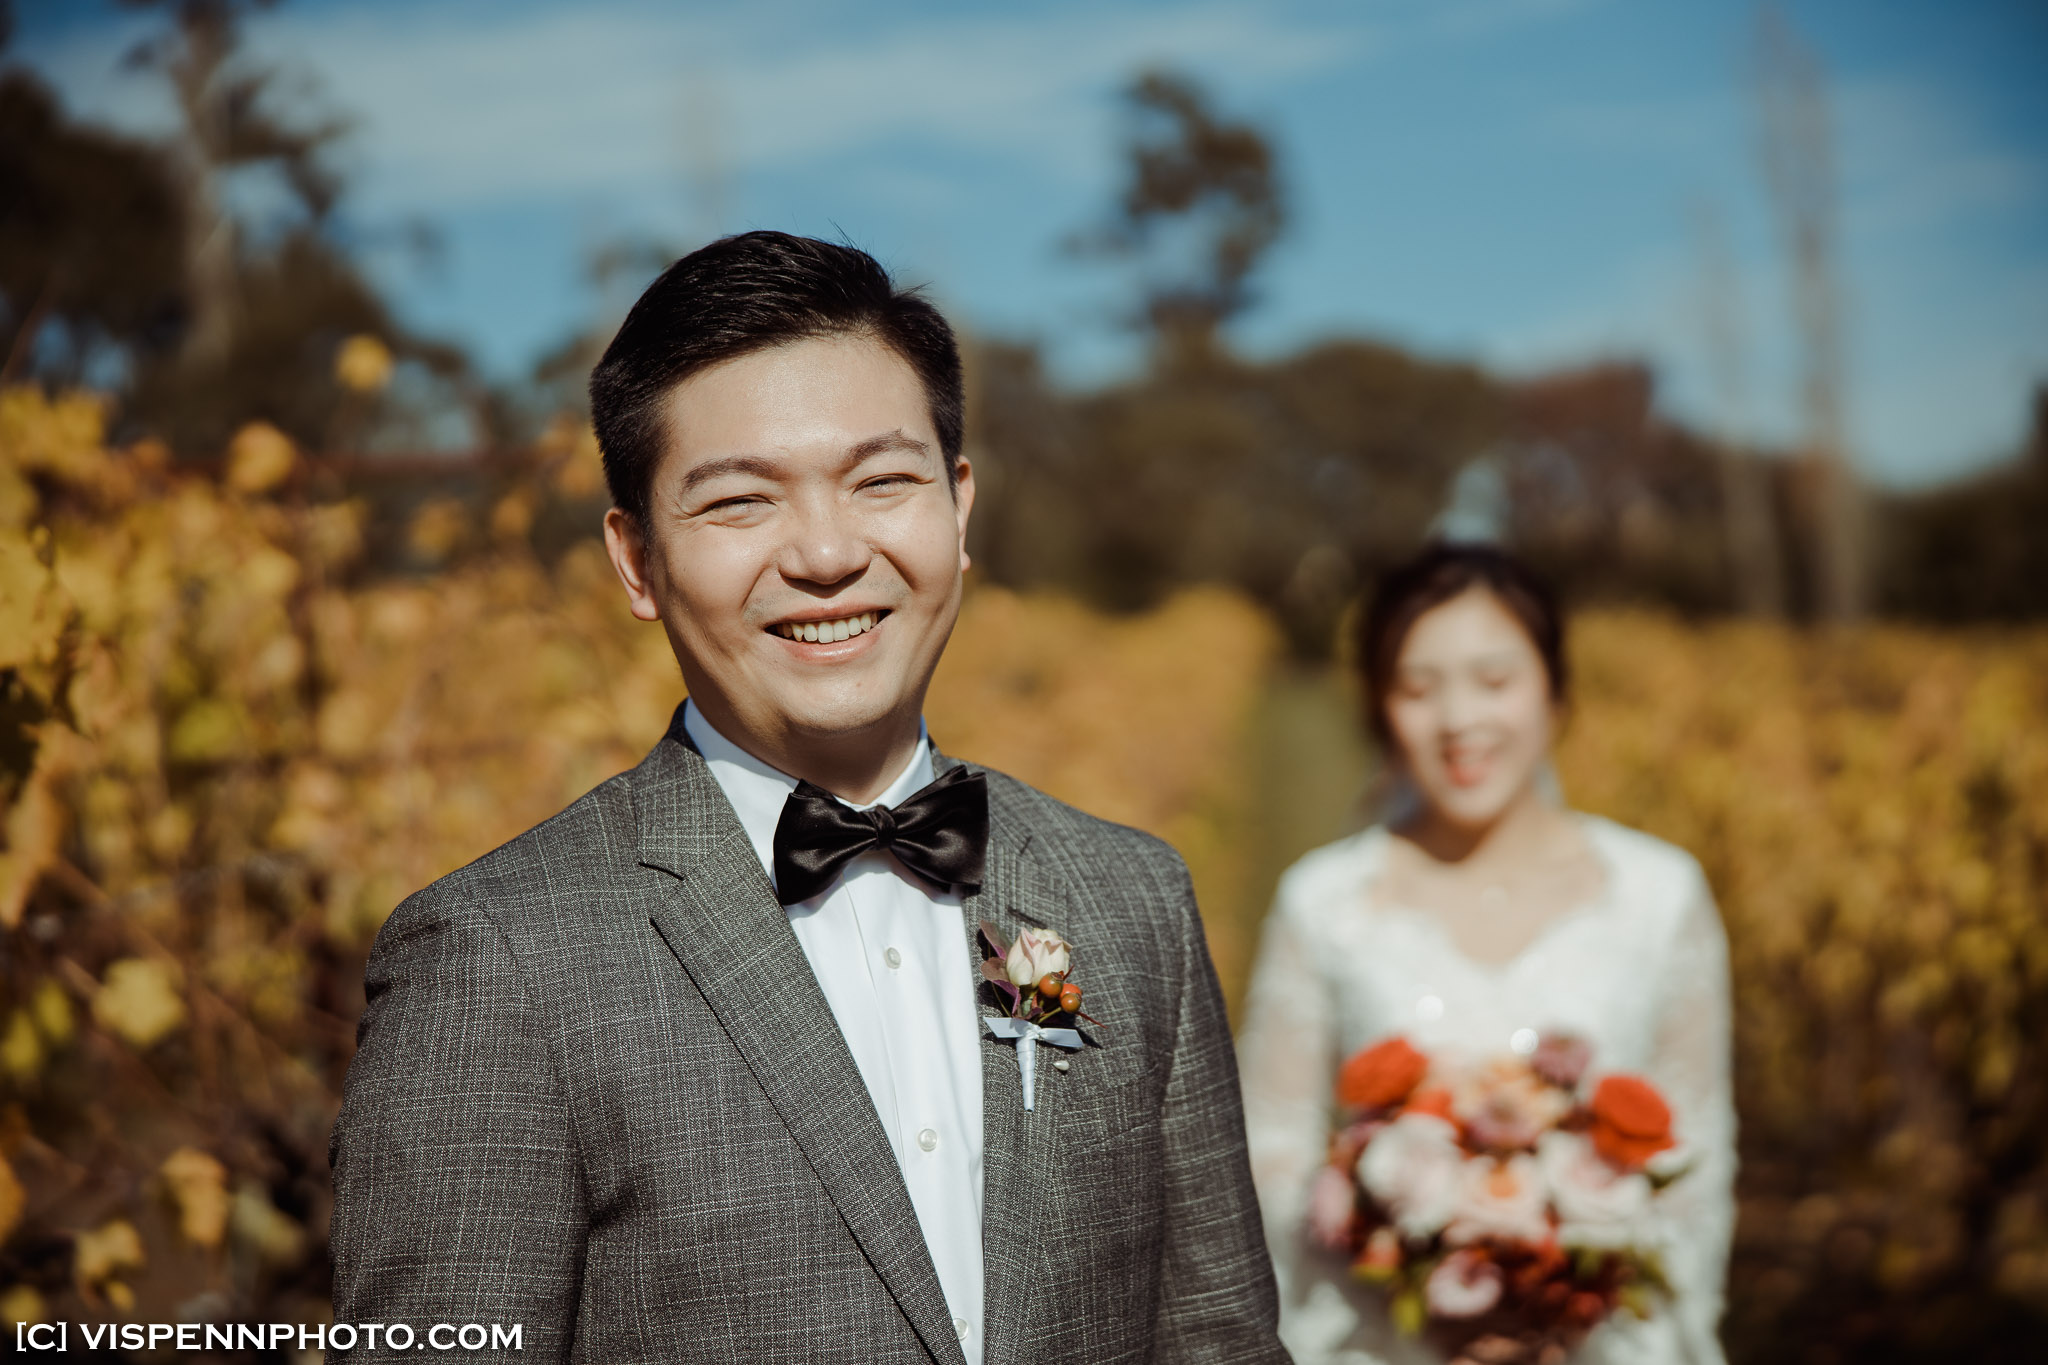 WEDDING DAY Photography Melbourne VISPENN 墨尔本 婚礼跟拍 婚礼摄像 婚礼摄影 结婚照 登记照 DominicHelen 1P 3521 EOSR VISPENN